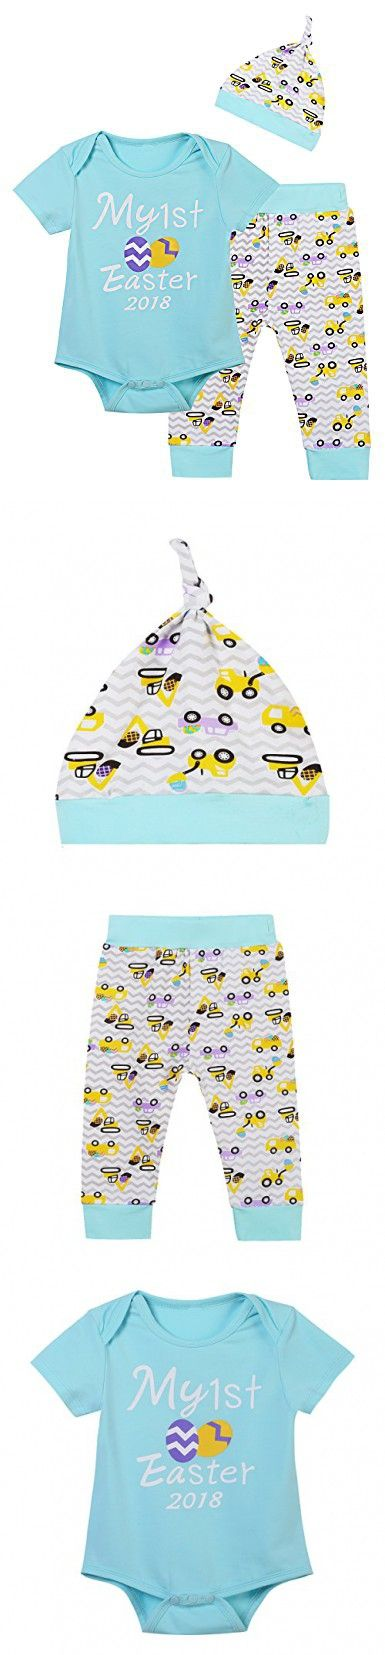 One my first easter gift baby boys eggs printed bodysuit pants with truly one my first easter gift baby boys eggs printed bodysuit pants with hat 0 3 months negle Image collections